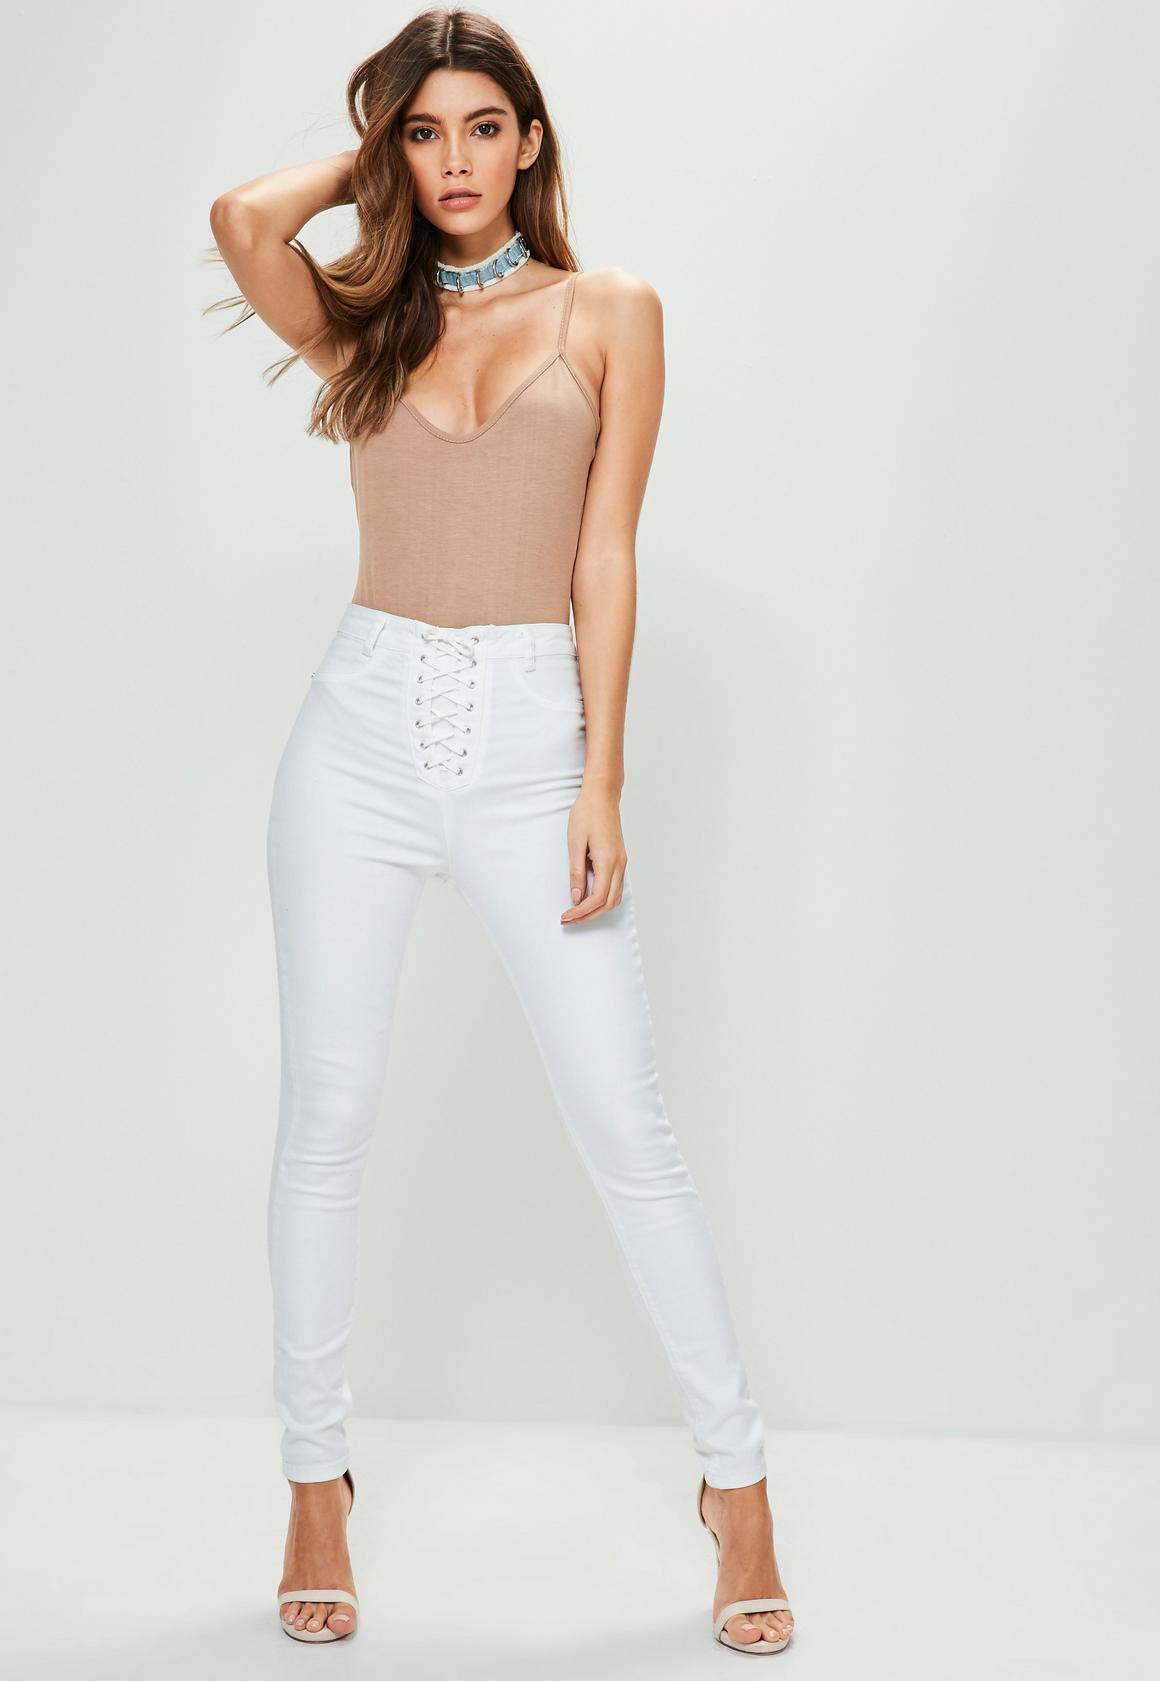 White Vice High Waisted Lace Up Skinny Jeans | Missguided Ireland